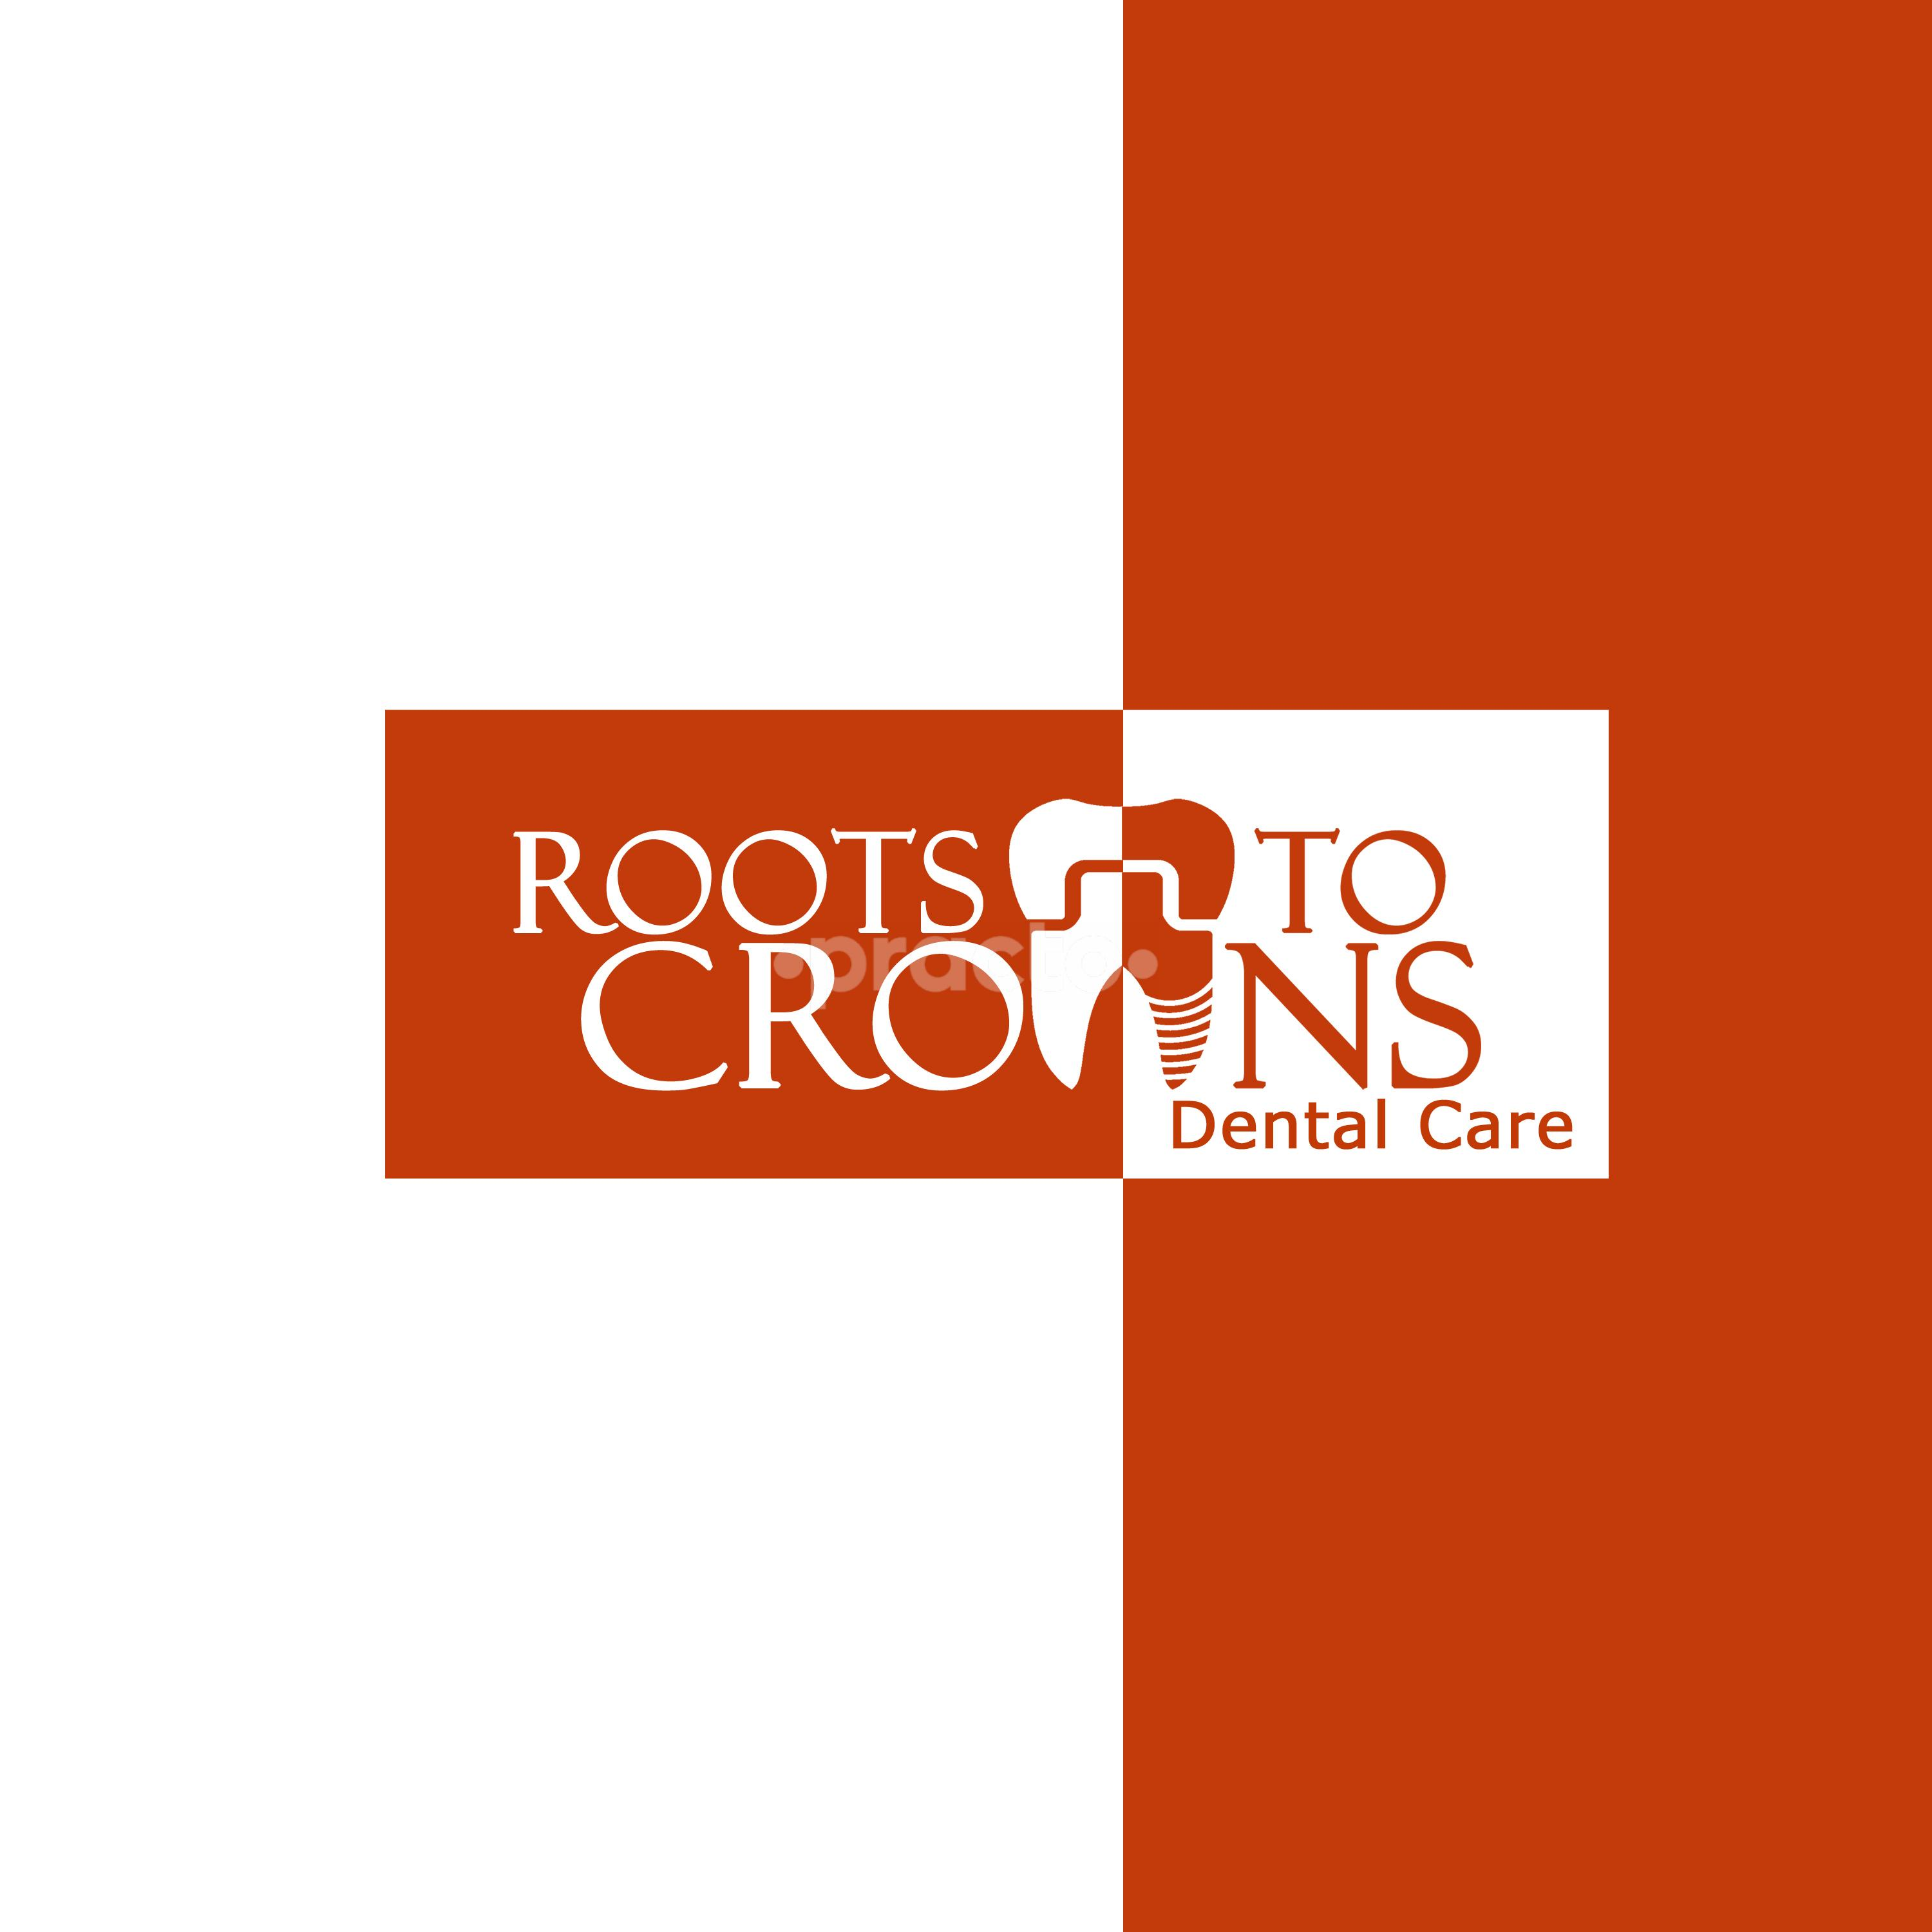 Roots to Crowns Dental Care